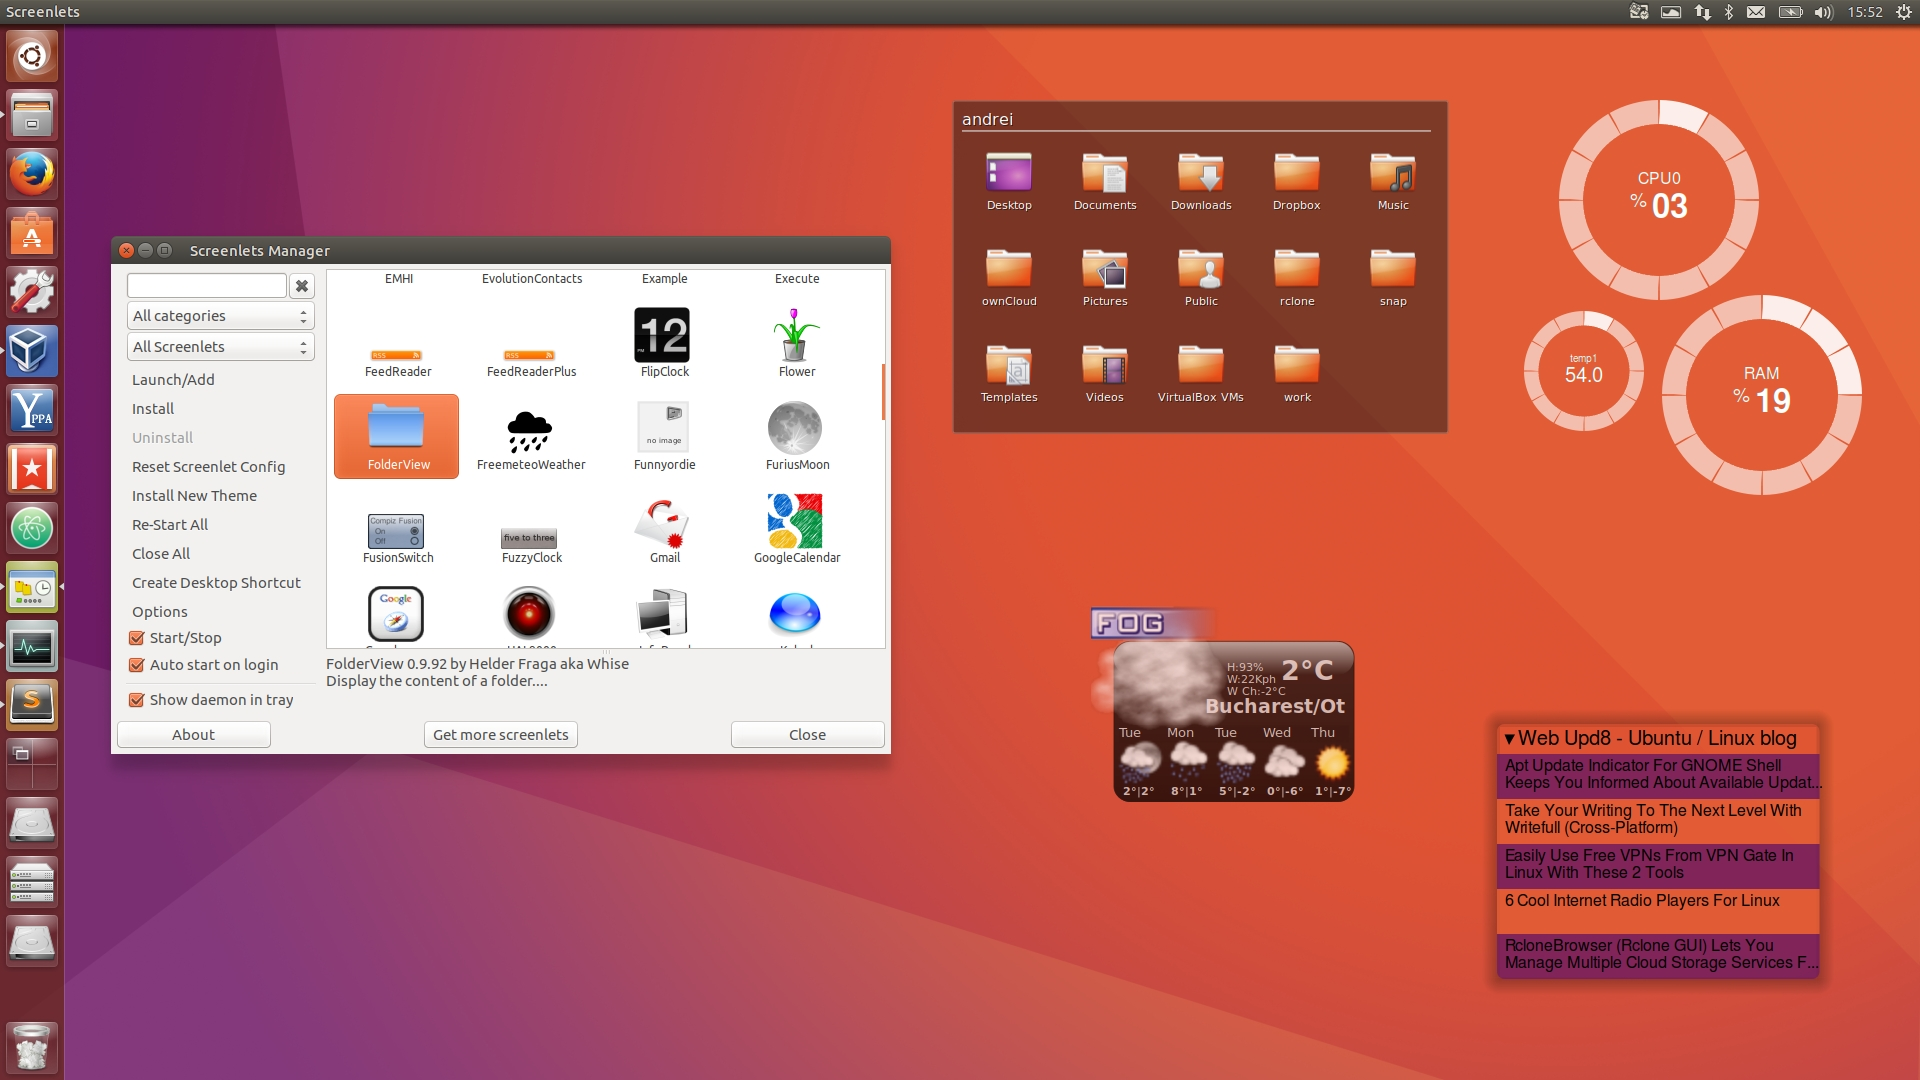 Screenlets (Desktop Widgets) Fixed For Ubuntu 16.04, Available In_Countdown Calendar For My Desktop